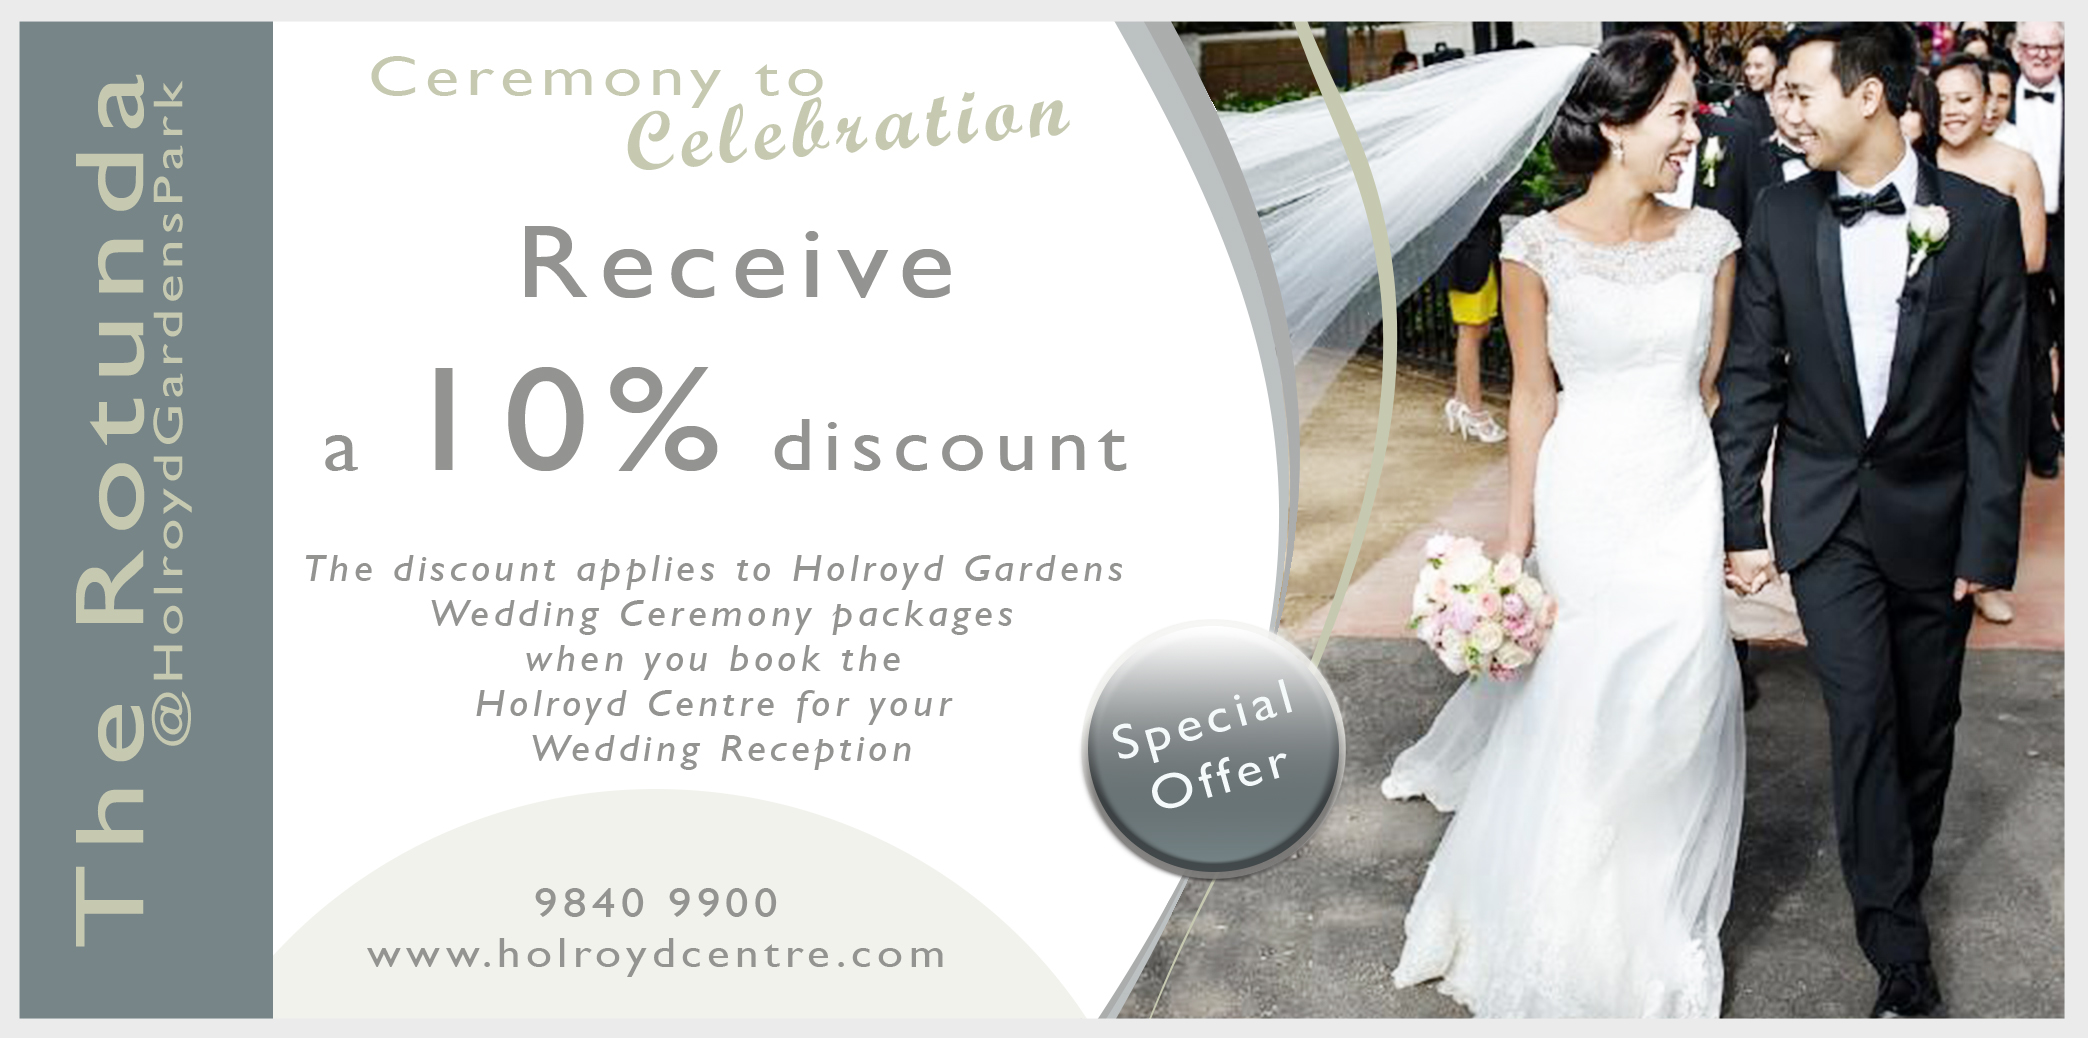 Special Offer for your Ceremony to Celebration